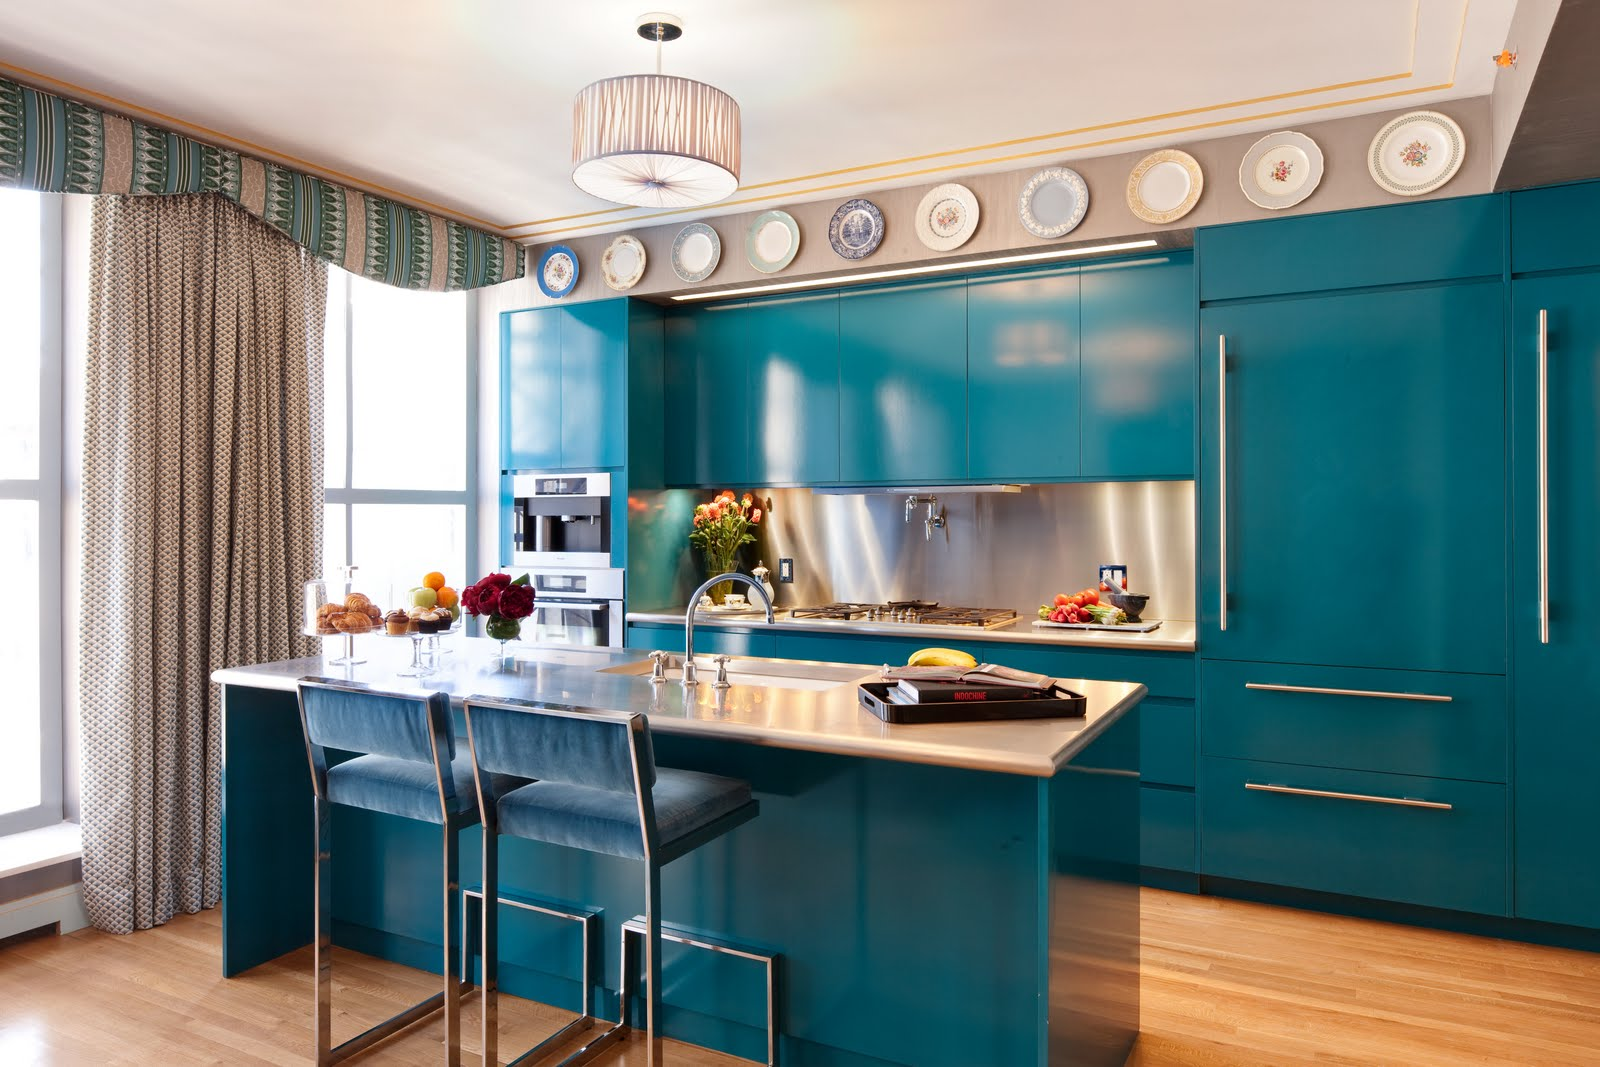 Kitchen Cabinet Colors 2012 Should Kitchen Cabinets Match The Hardwood Floors